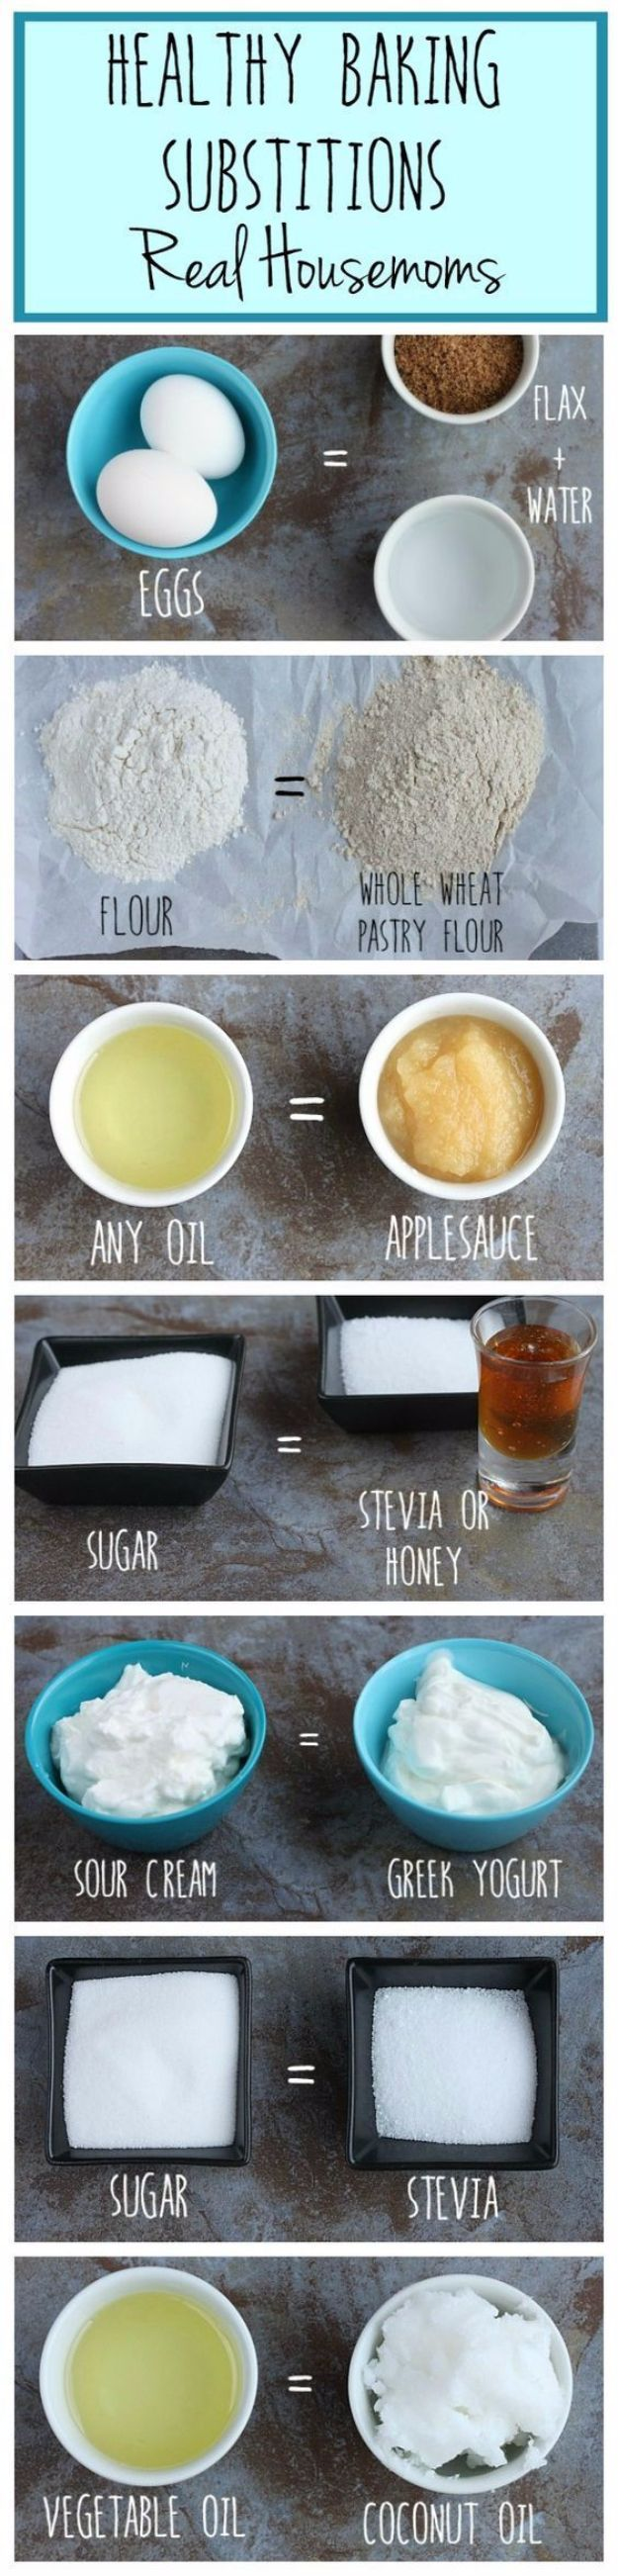 Best Baking Hacks - Healthy Baking Substitutions - DIY Cooking Tips and Tricks for Baking Recipes - Quick Ways to Bake Cake, Cupcakes, Desserts and Cookies - Kitchen Lifehacks for Bakers http://diyjoy.com/baking-hacks